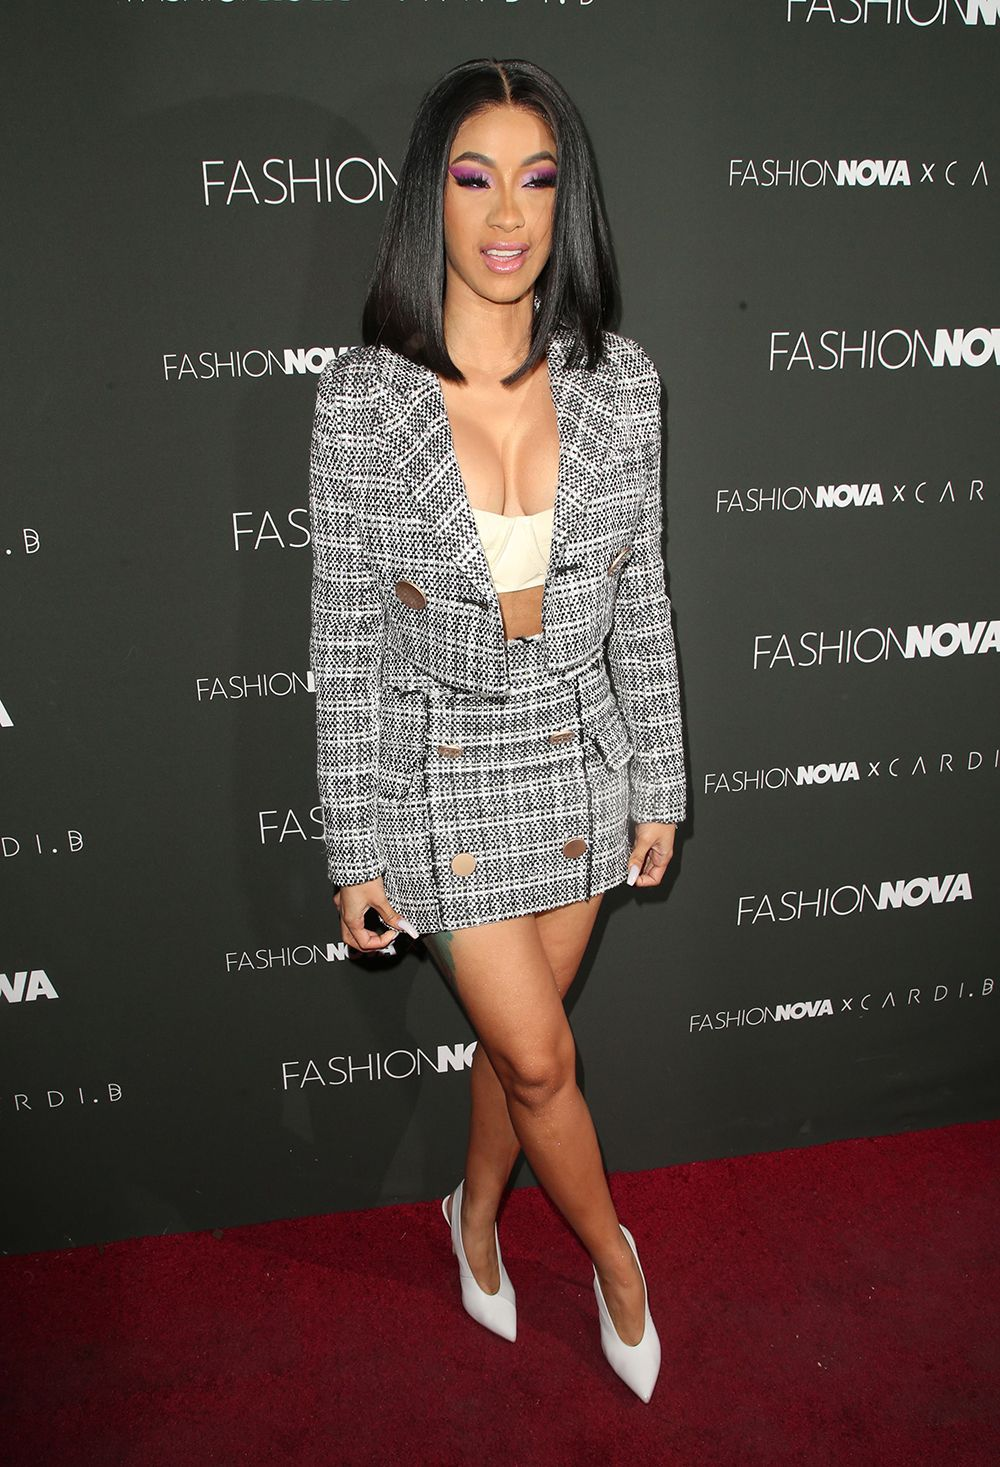 c96fdc9a8fd Cardi B rocked one fierce outfit at her Fashion Nova x Cardi B launch  event. -- HollywoodLife